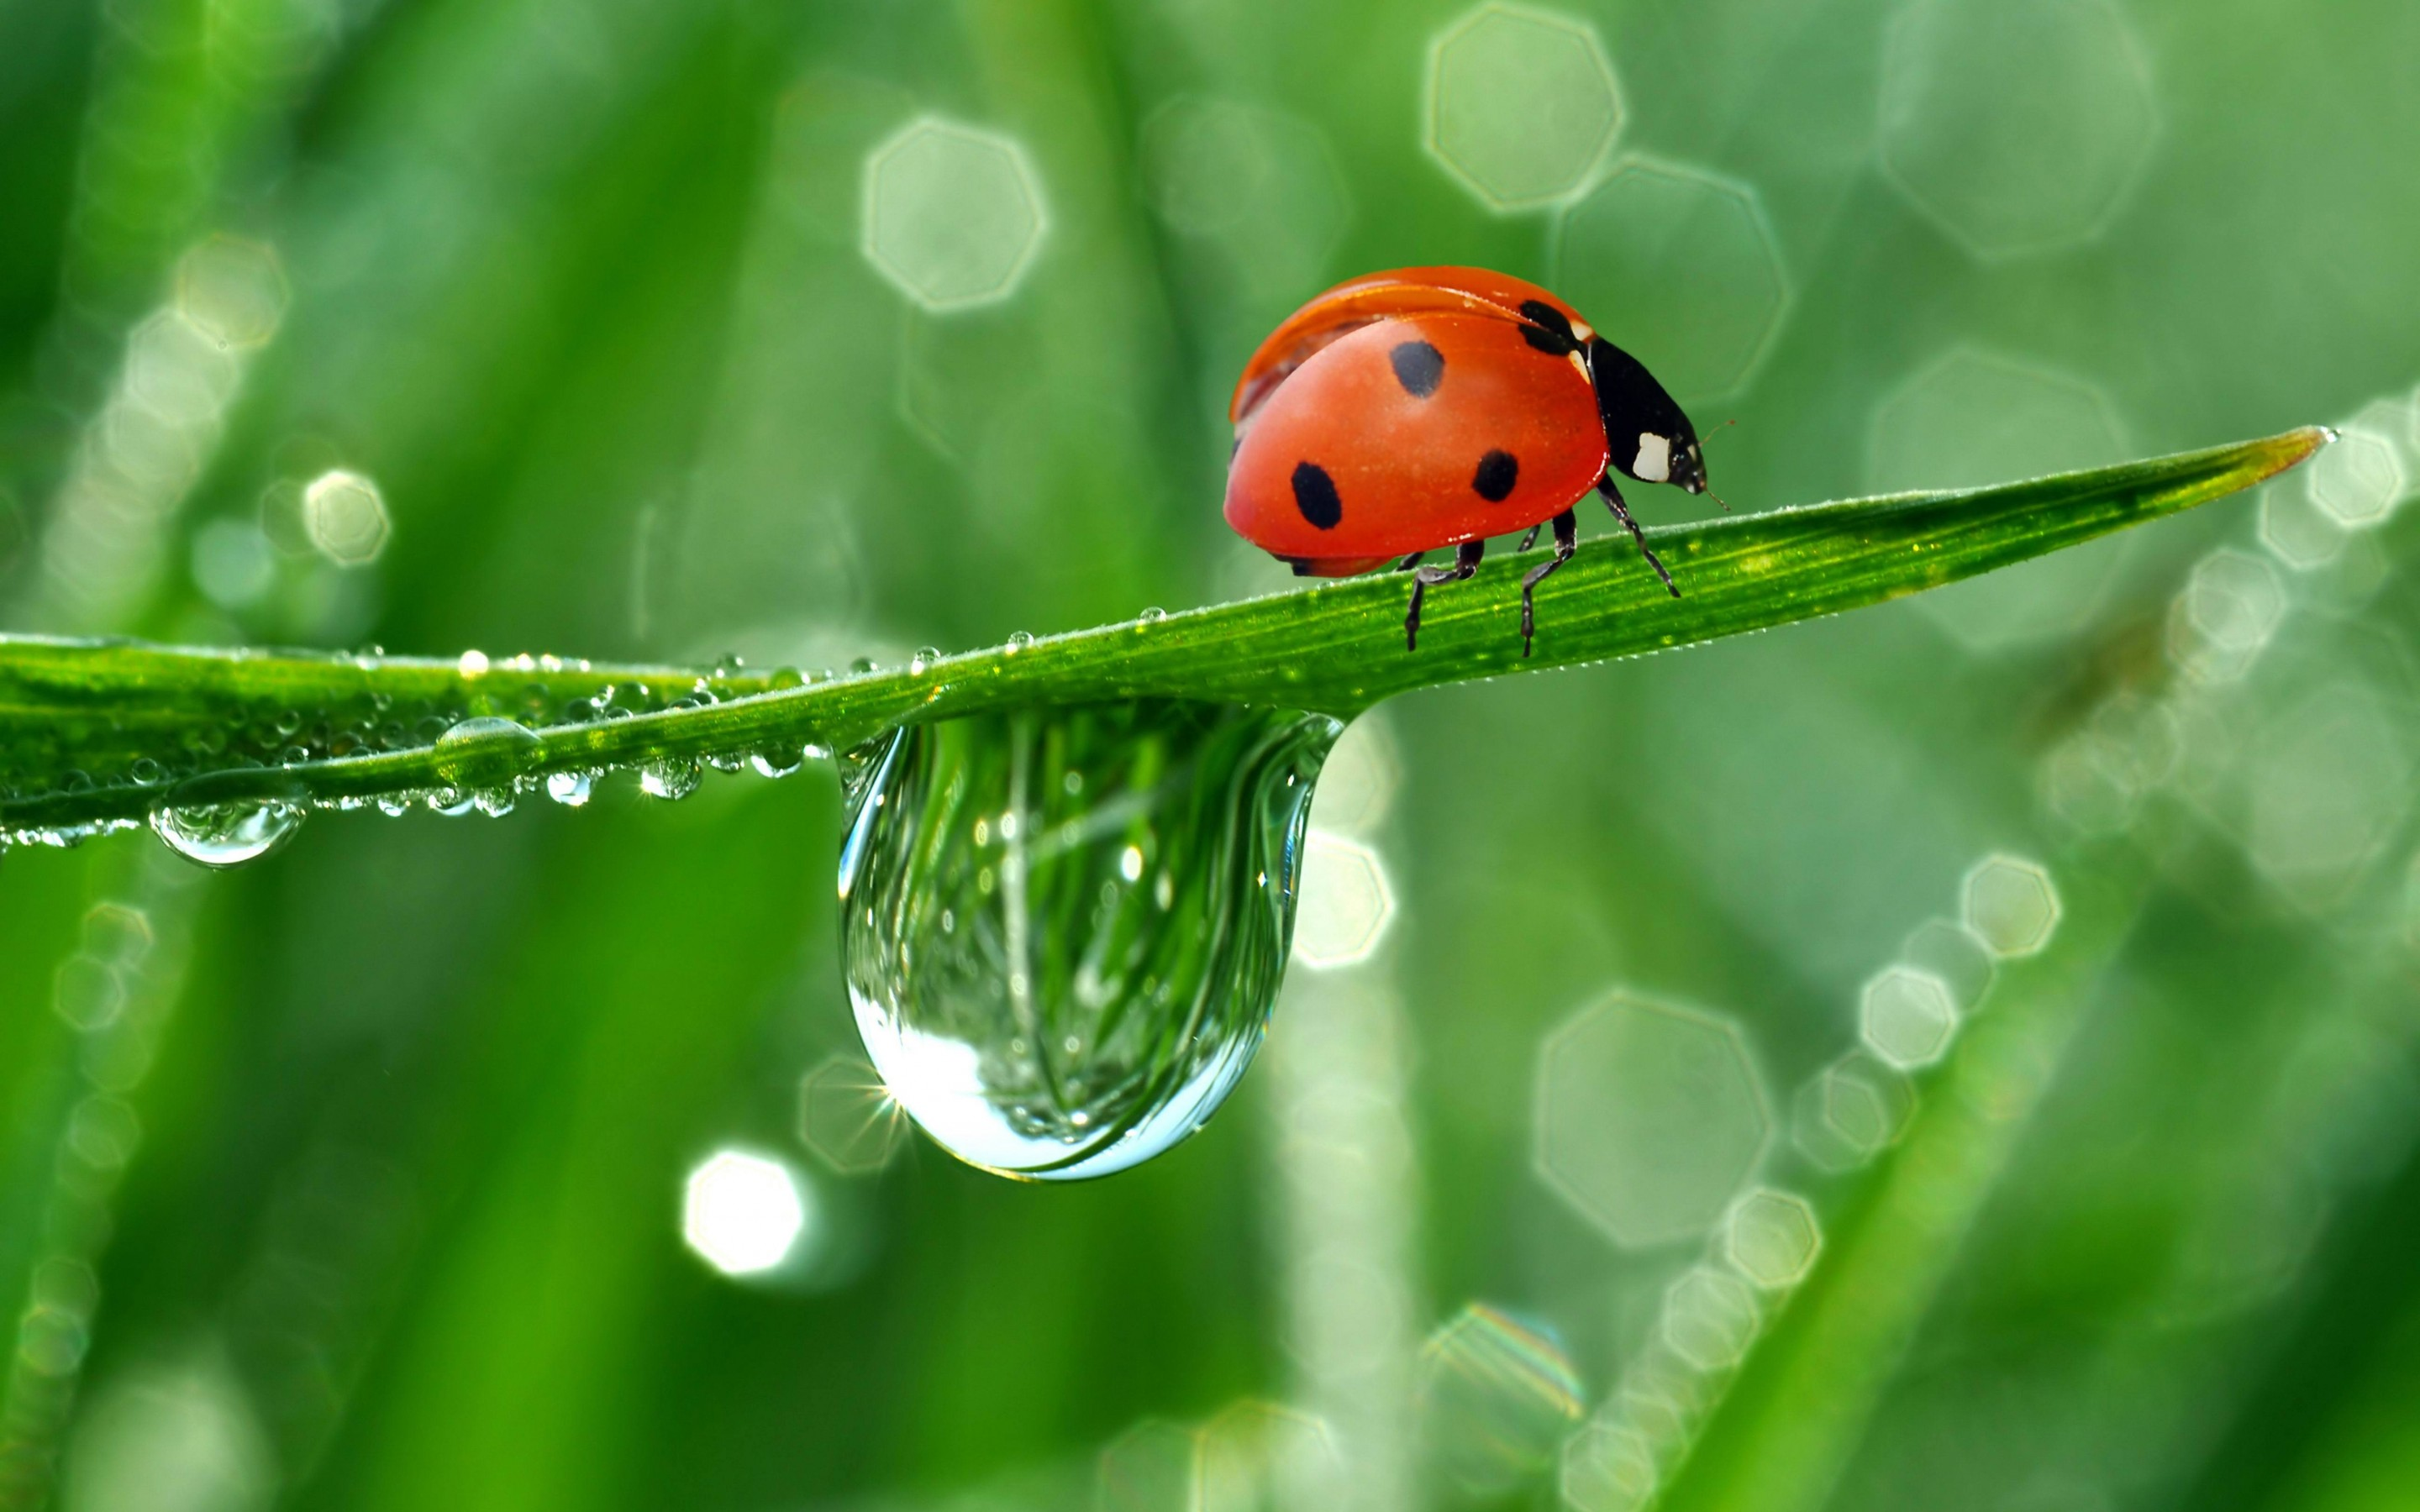 10 Lovely HD Ladybug Wallpapers